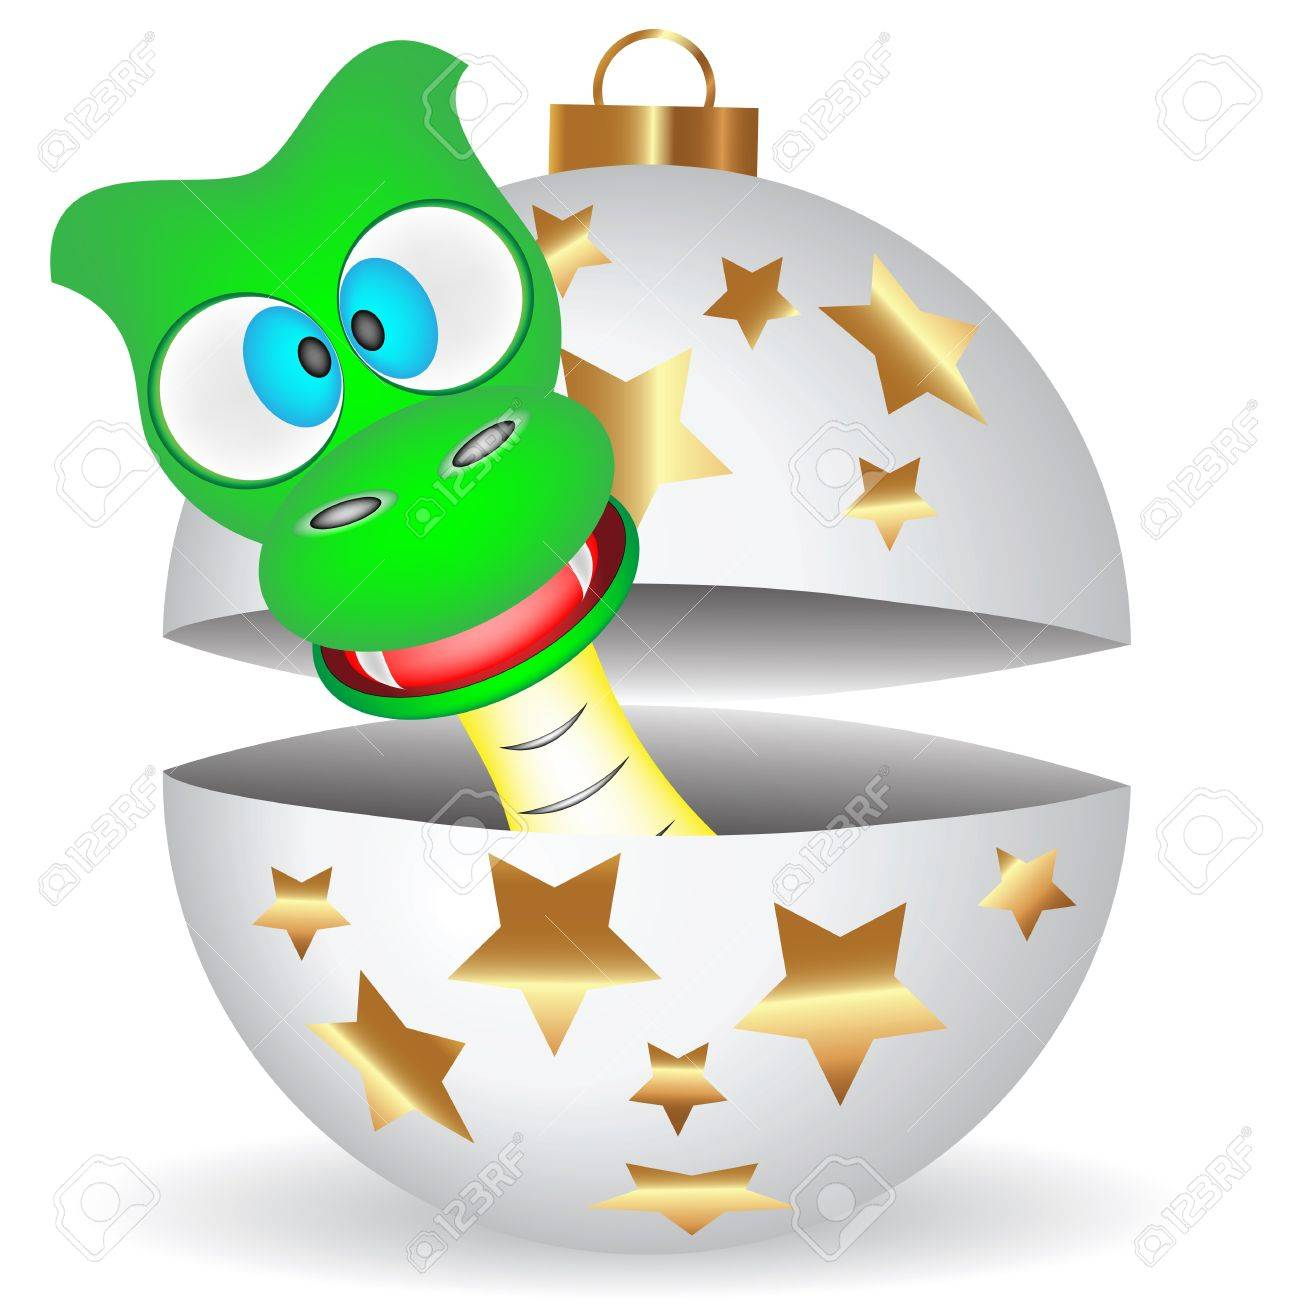 1300x1300 Cute, Funny Dragon In The Egg A Symbol Of The New Year Royalty